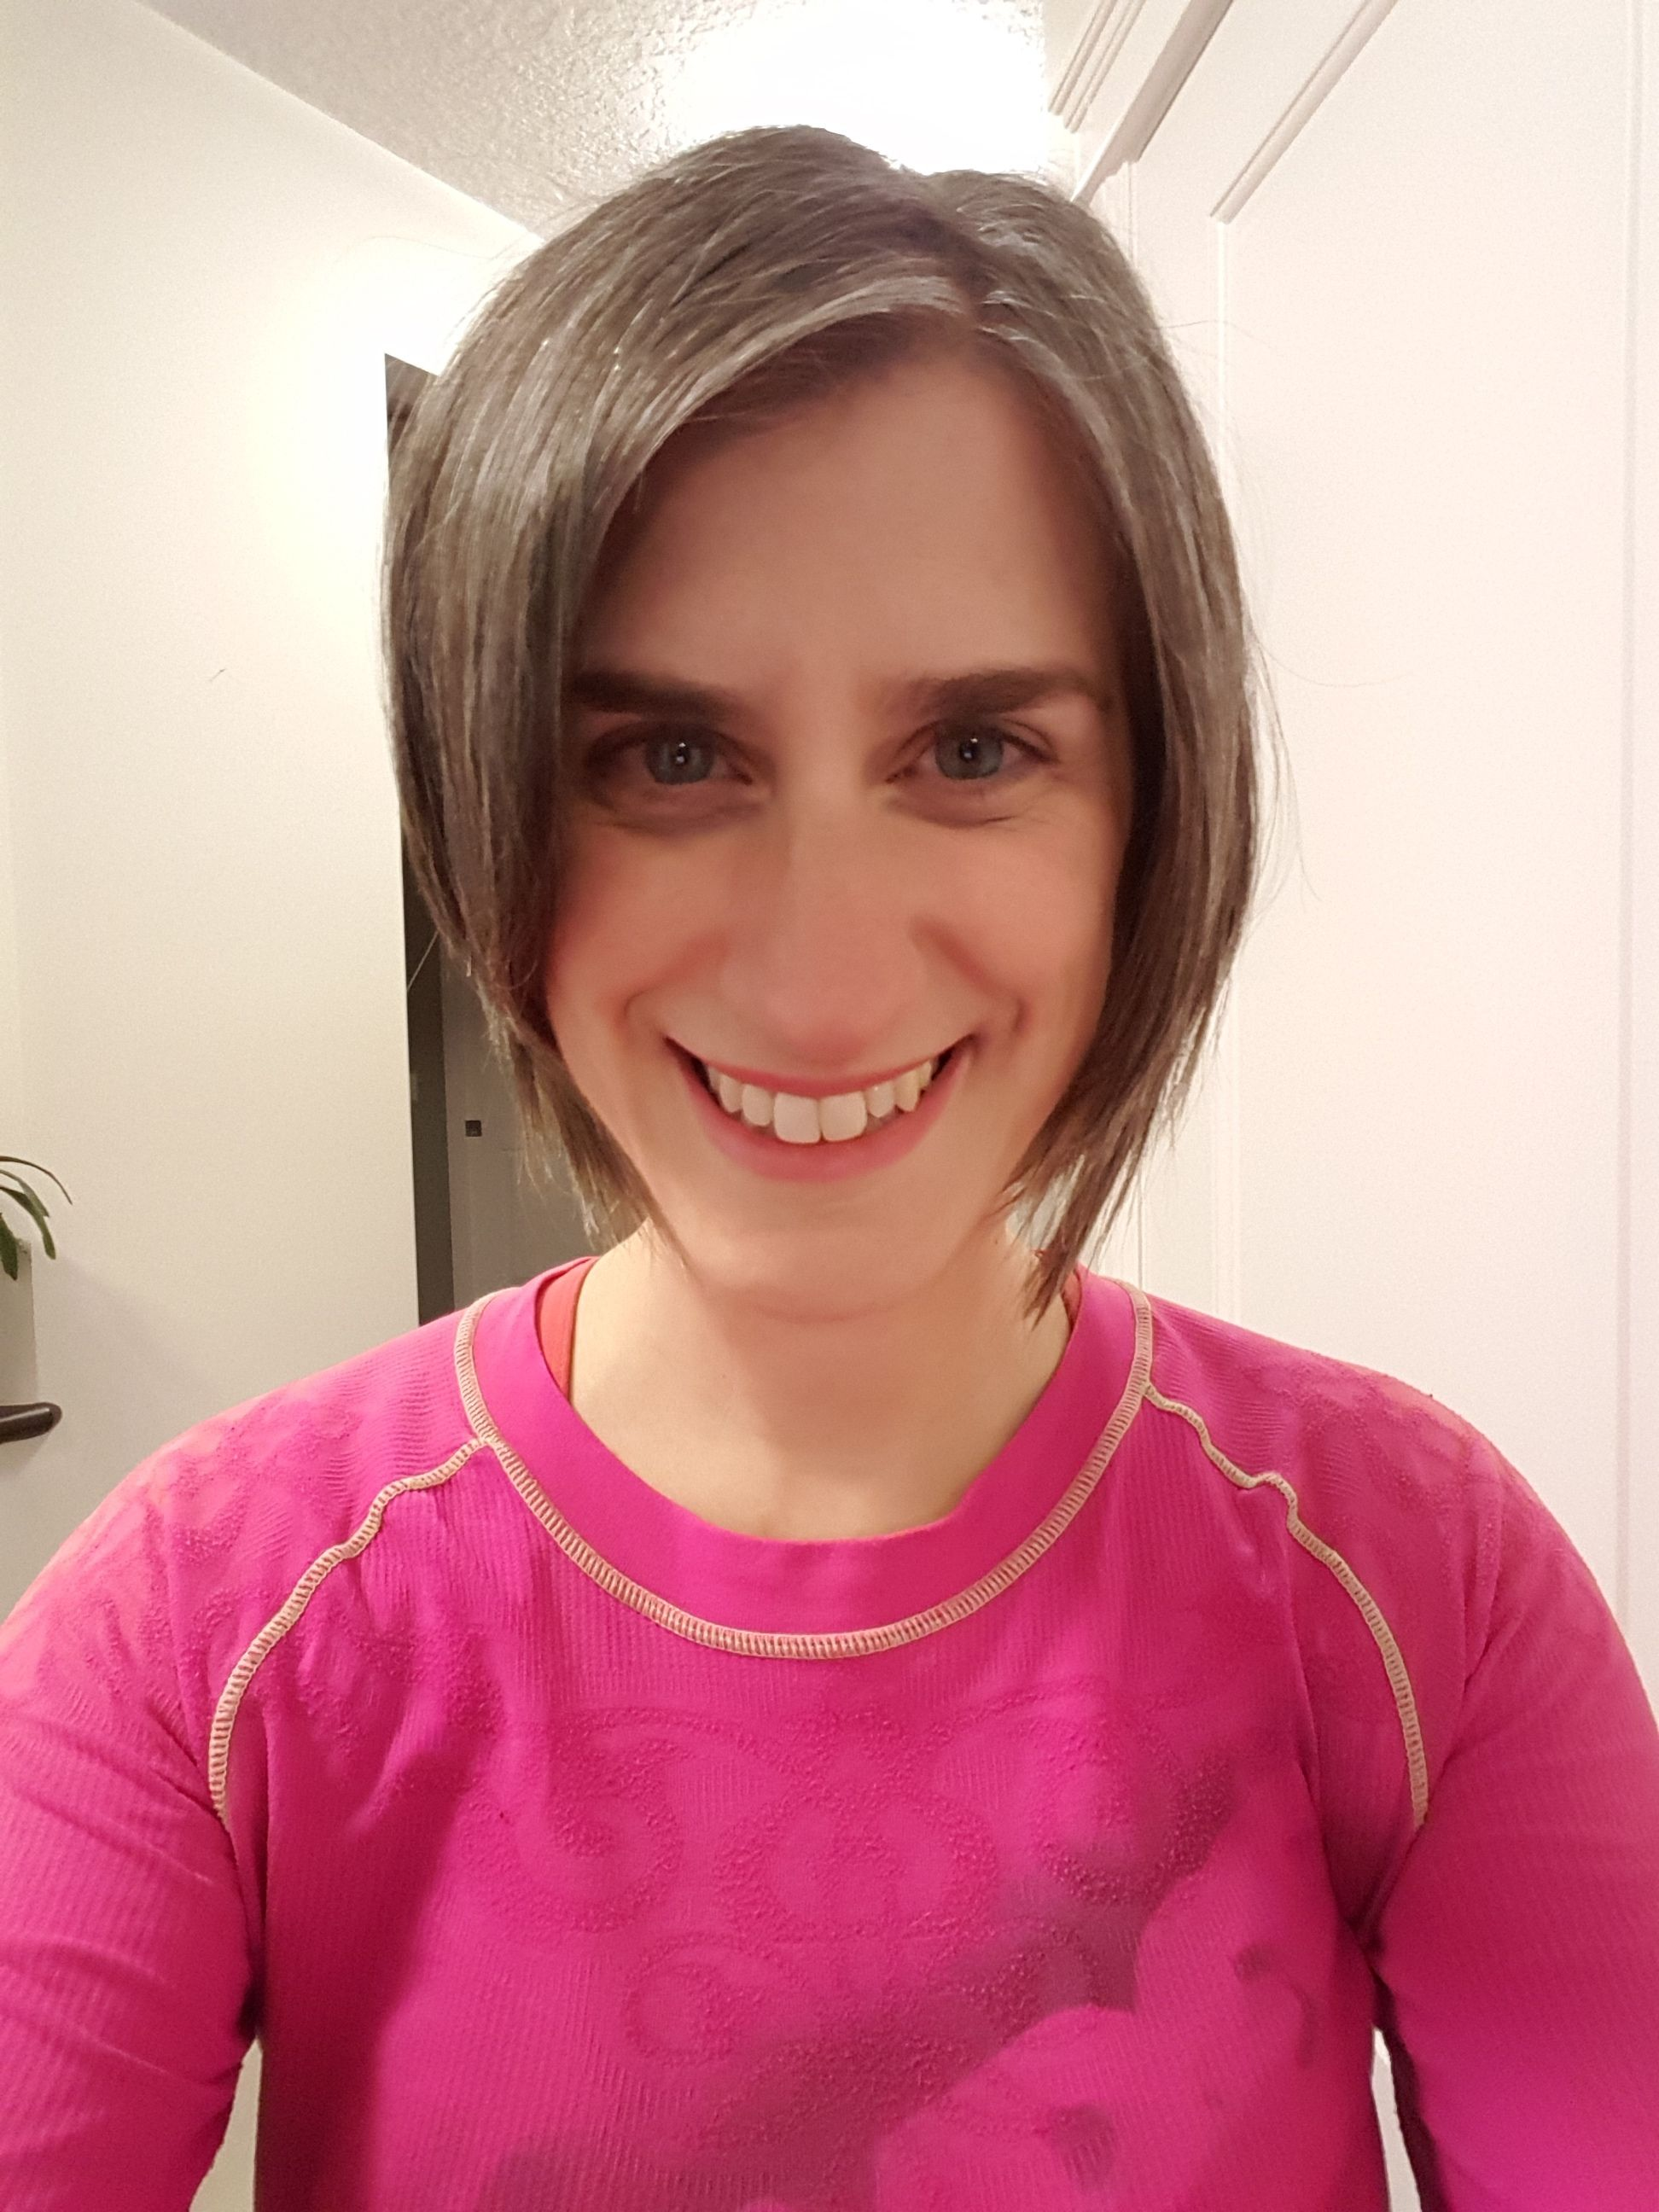 nathalie single women Chat with nathalie, 45 today from boisbriand, canada start talking to her totally free at badoo.